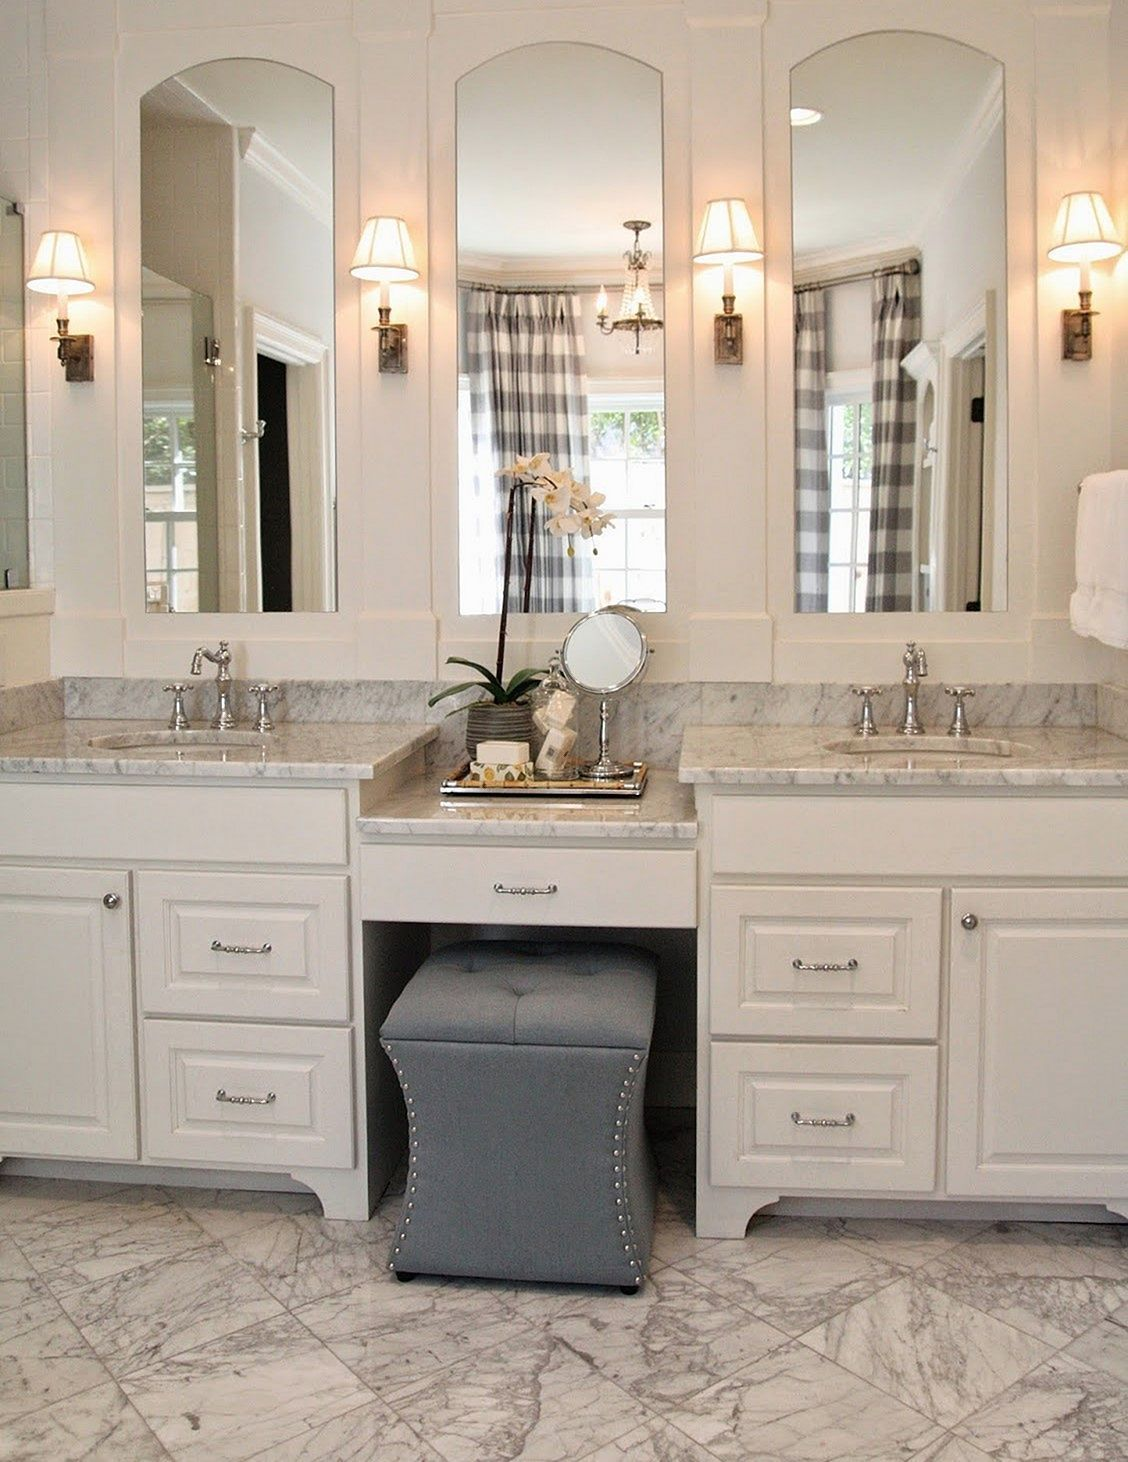 The Best Diy Master Bathroom Ideas Remodel On A Budget No 68  Design  Decorating  The Best Diy Master Bathroom Ideas Remodel On A Budget No 67 Best Picture For home diy a...